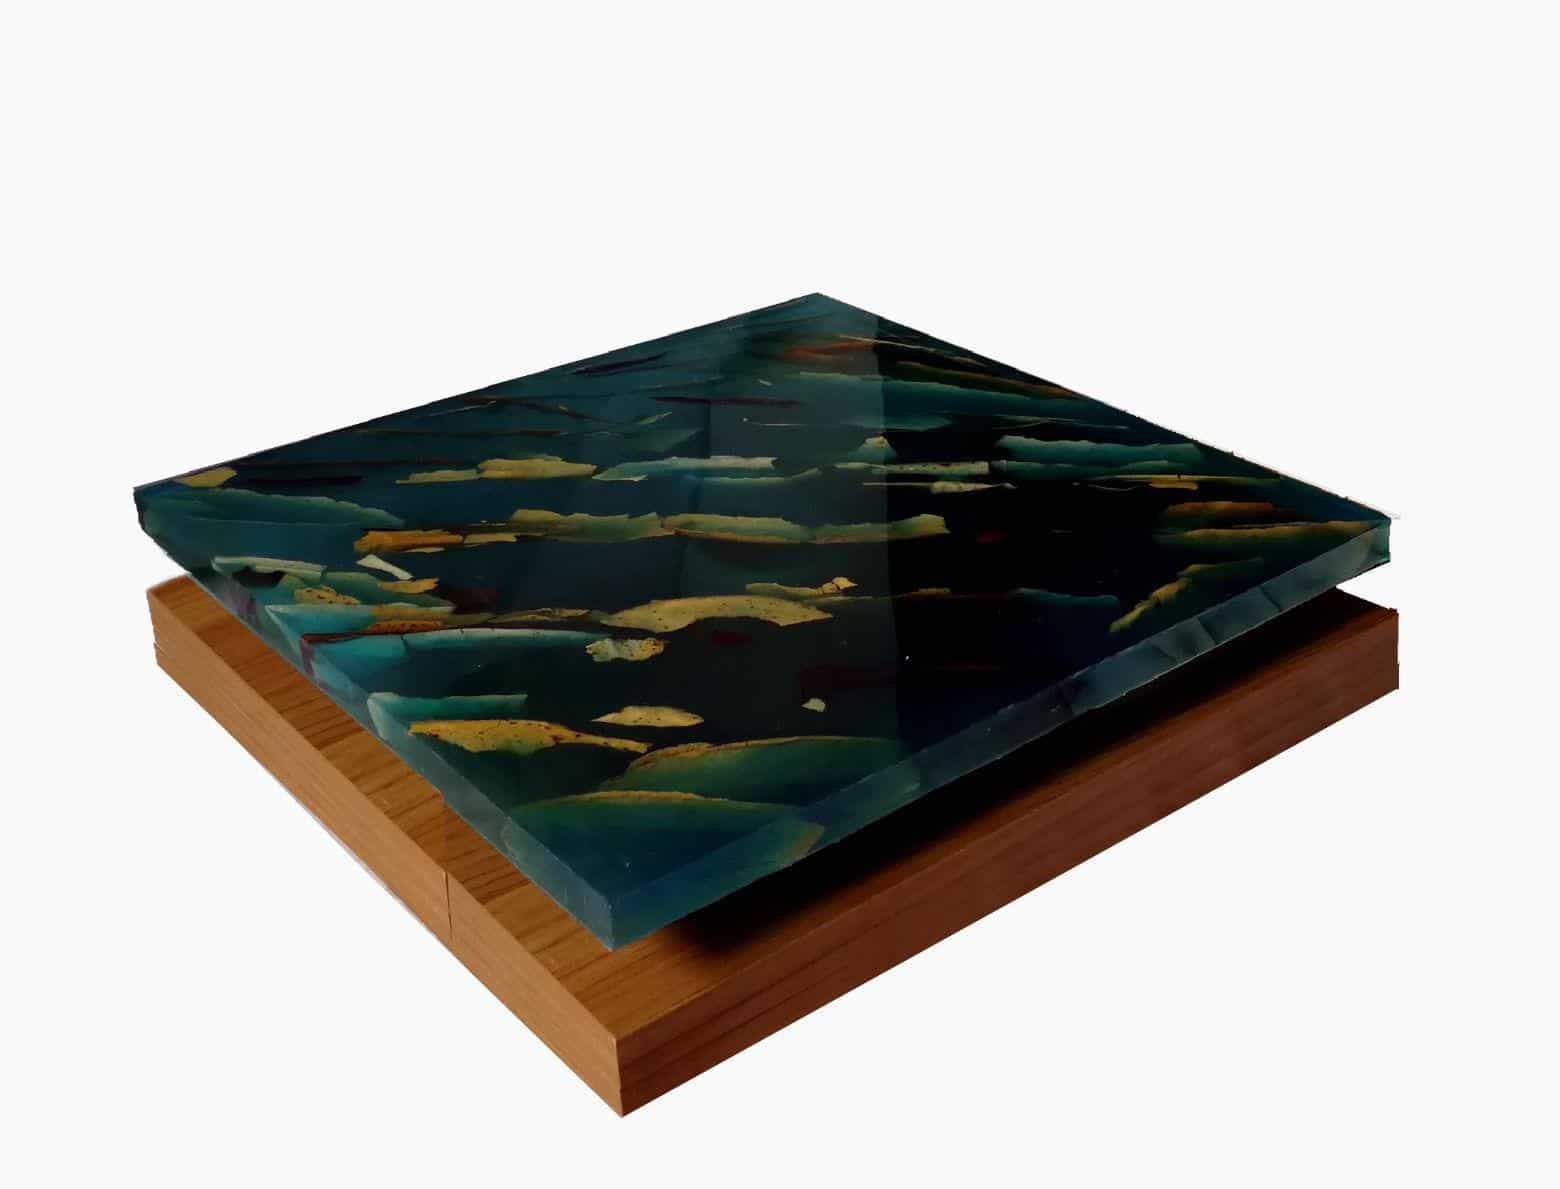 far-from-the-forest-alessandro-lobino-resin-and-bred-wood